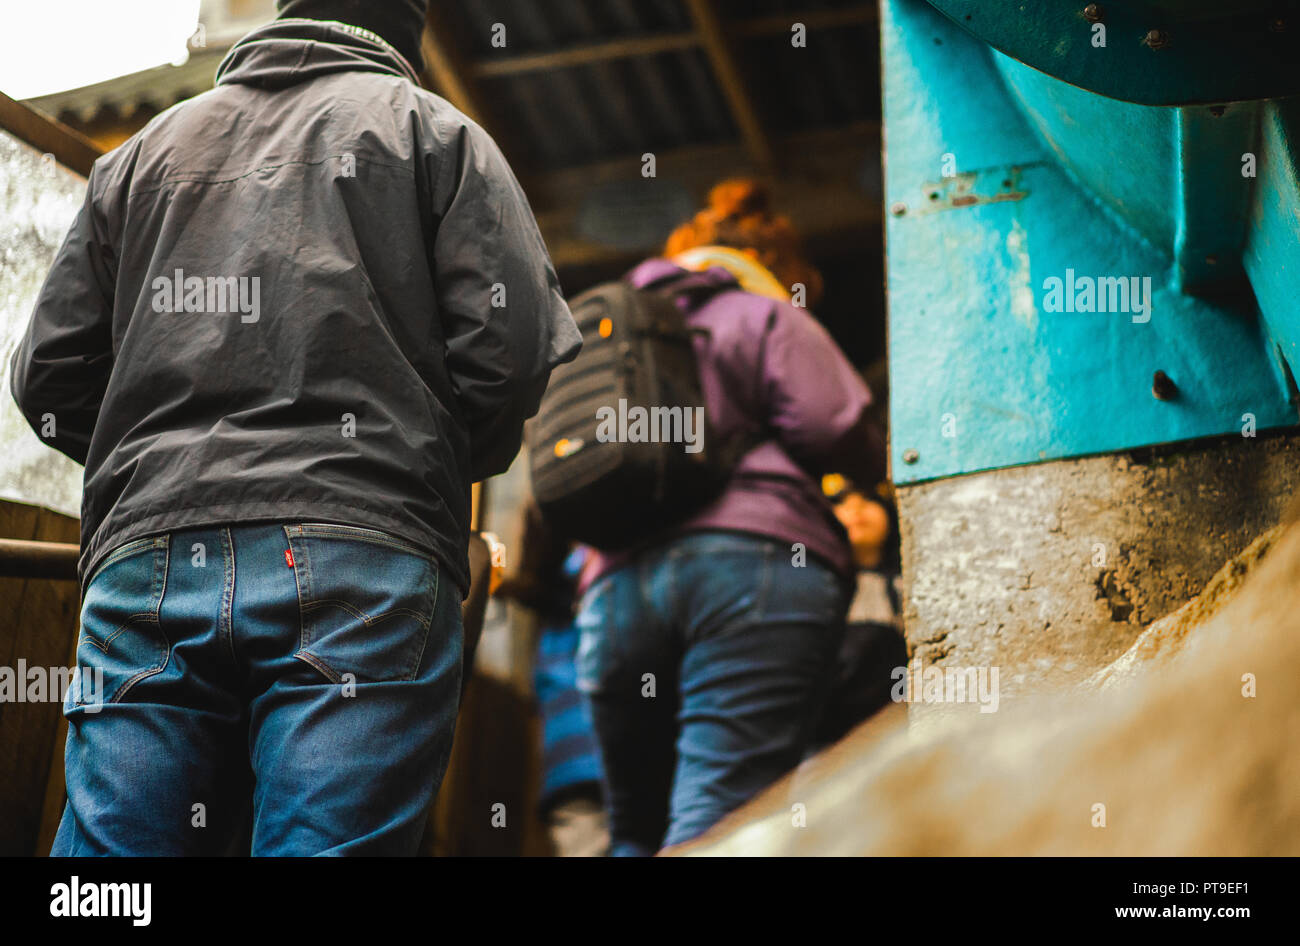 Dangerous looking man behind a woman with a bag in a purple jacket waiting in a queue - Stock Image